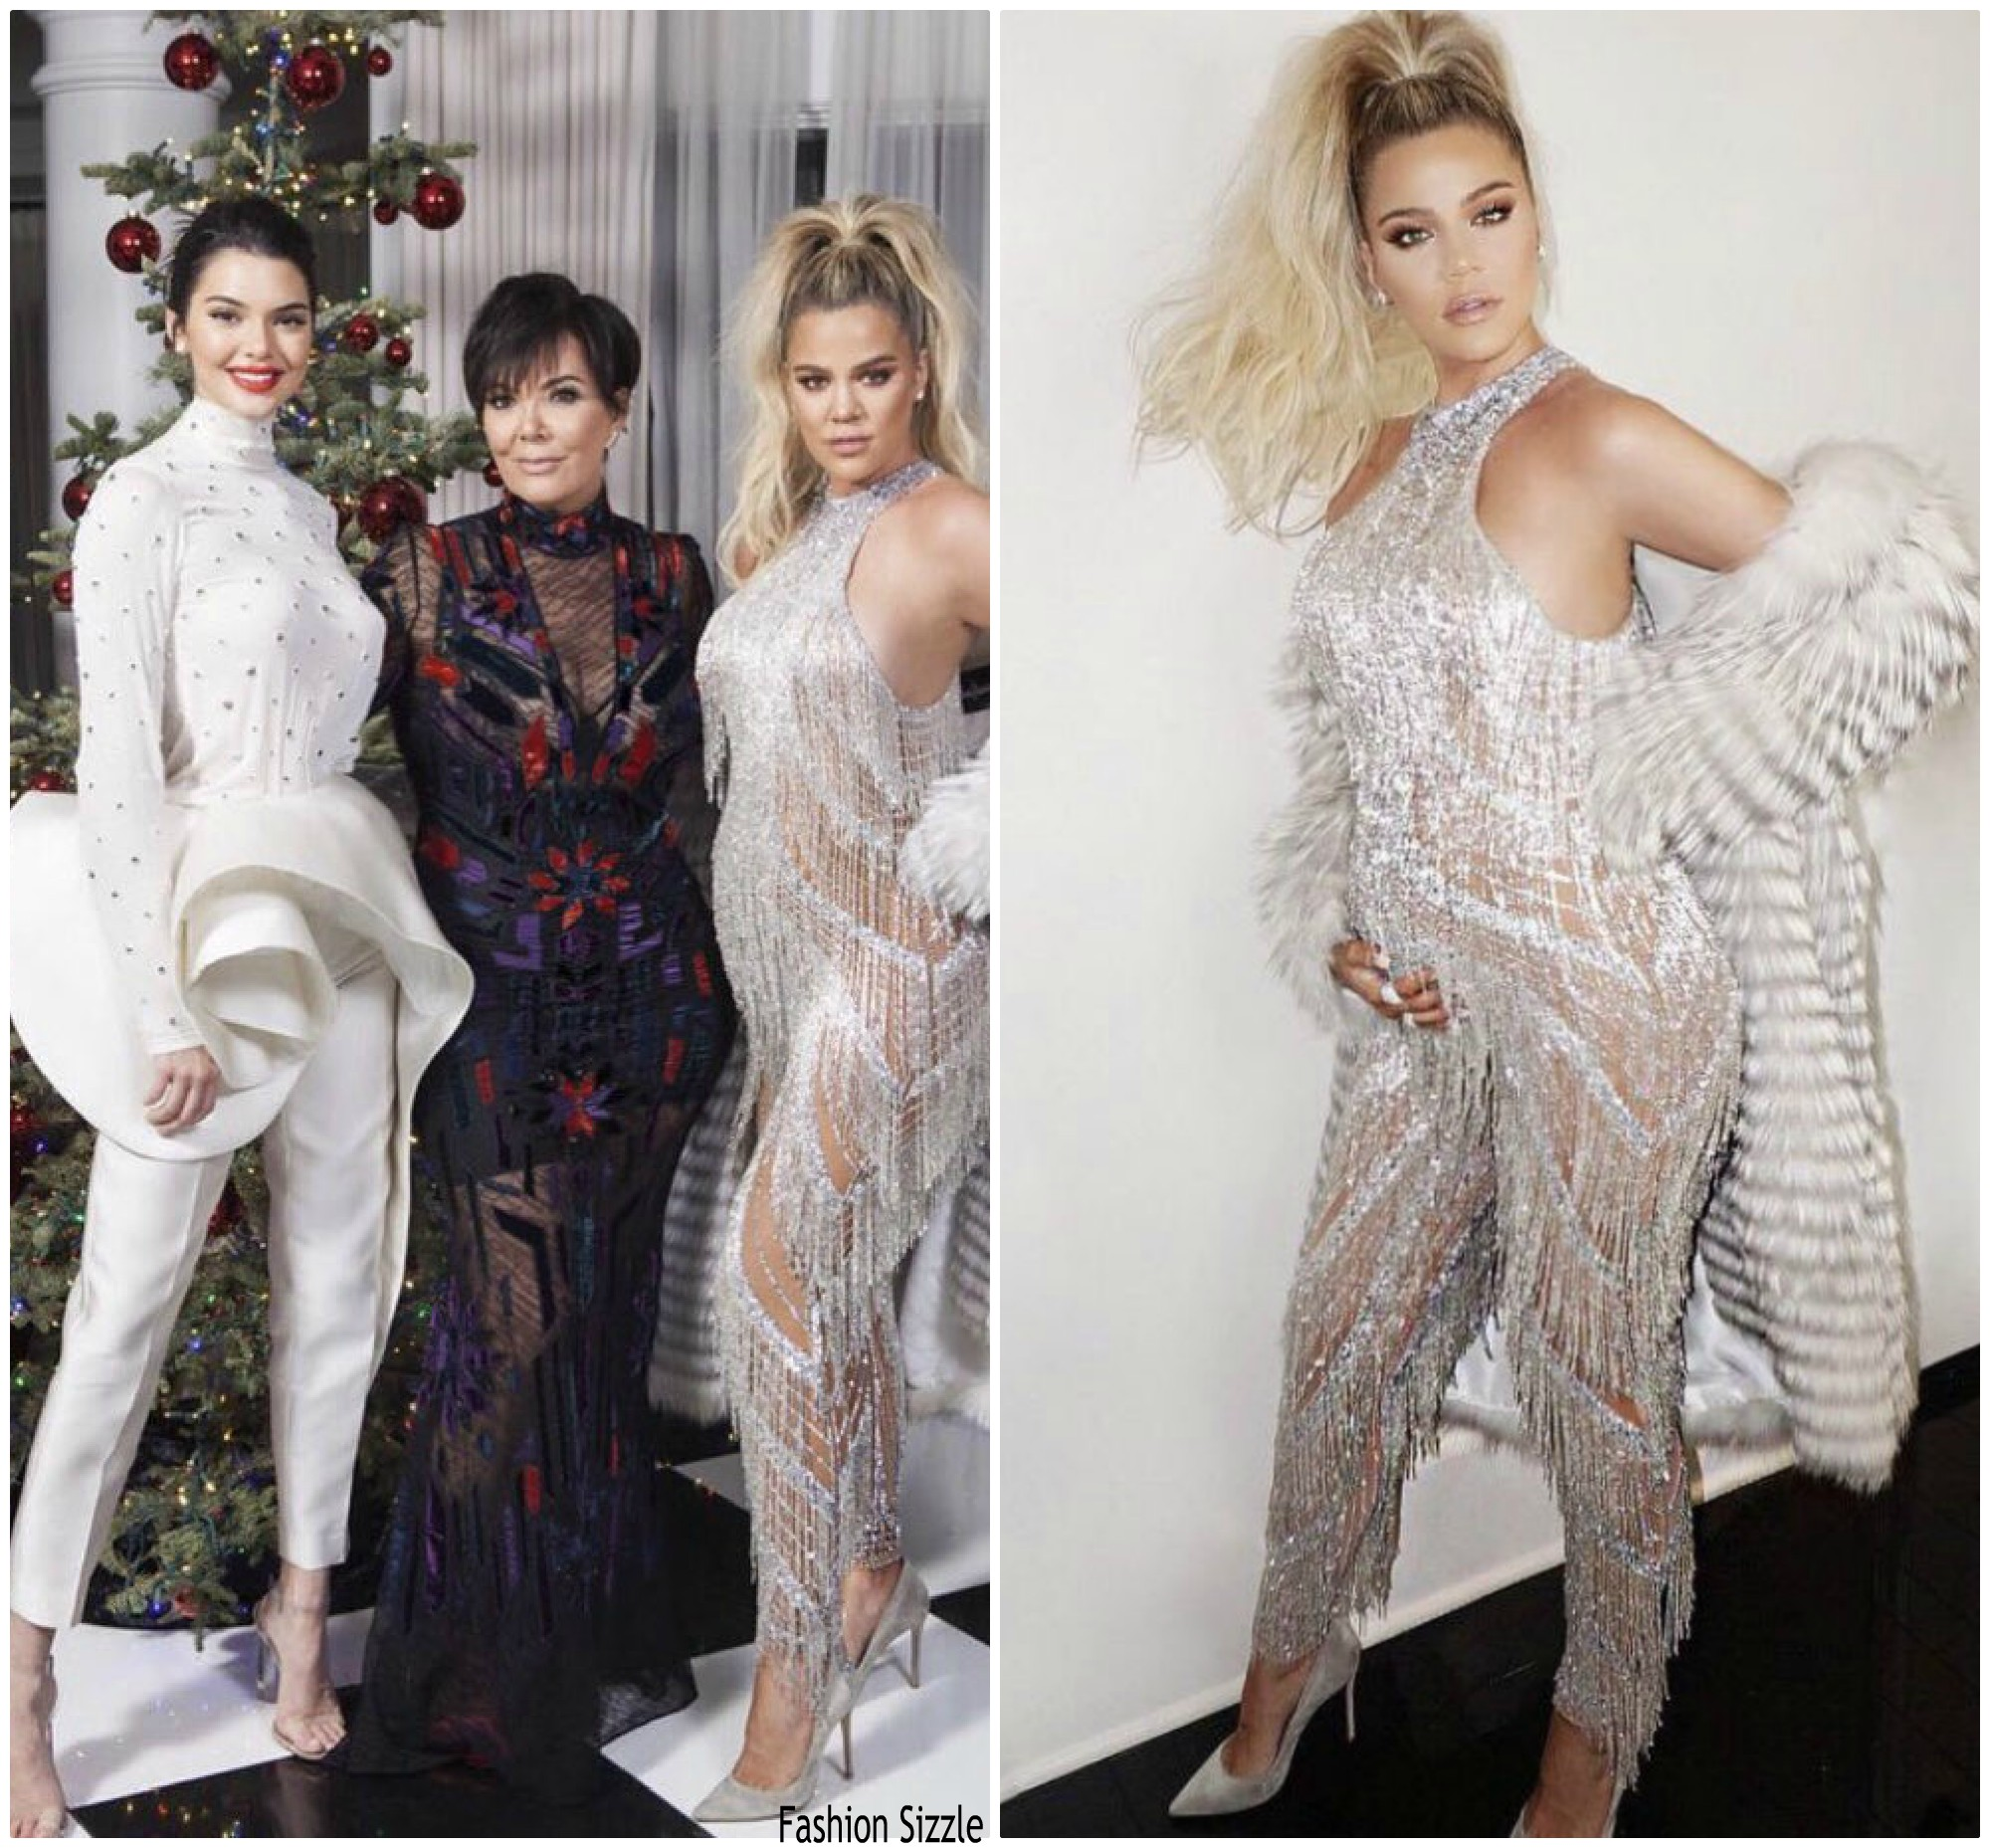 Khloe Kardashian shows her baby bump @ Kardashian Christmas Party ...